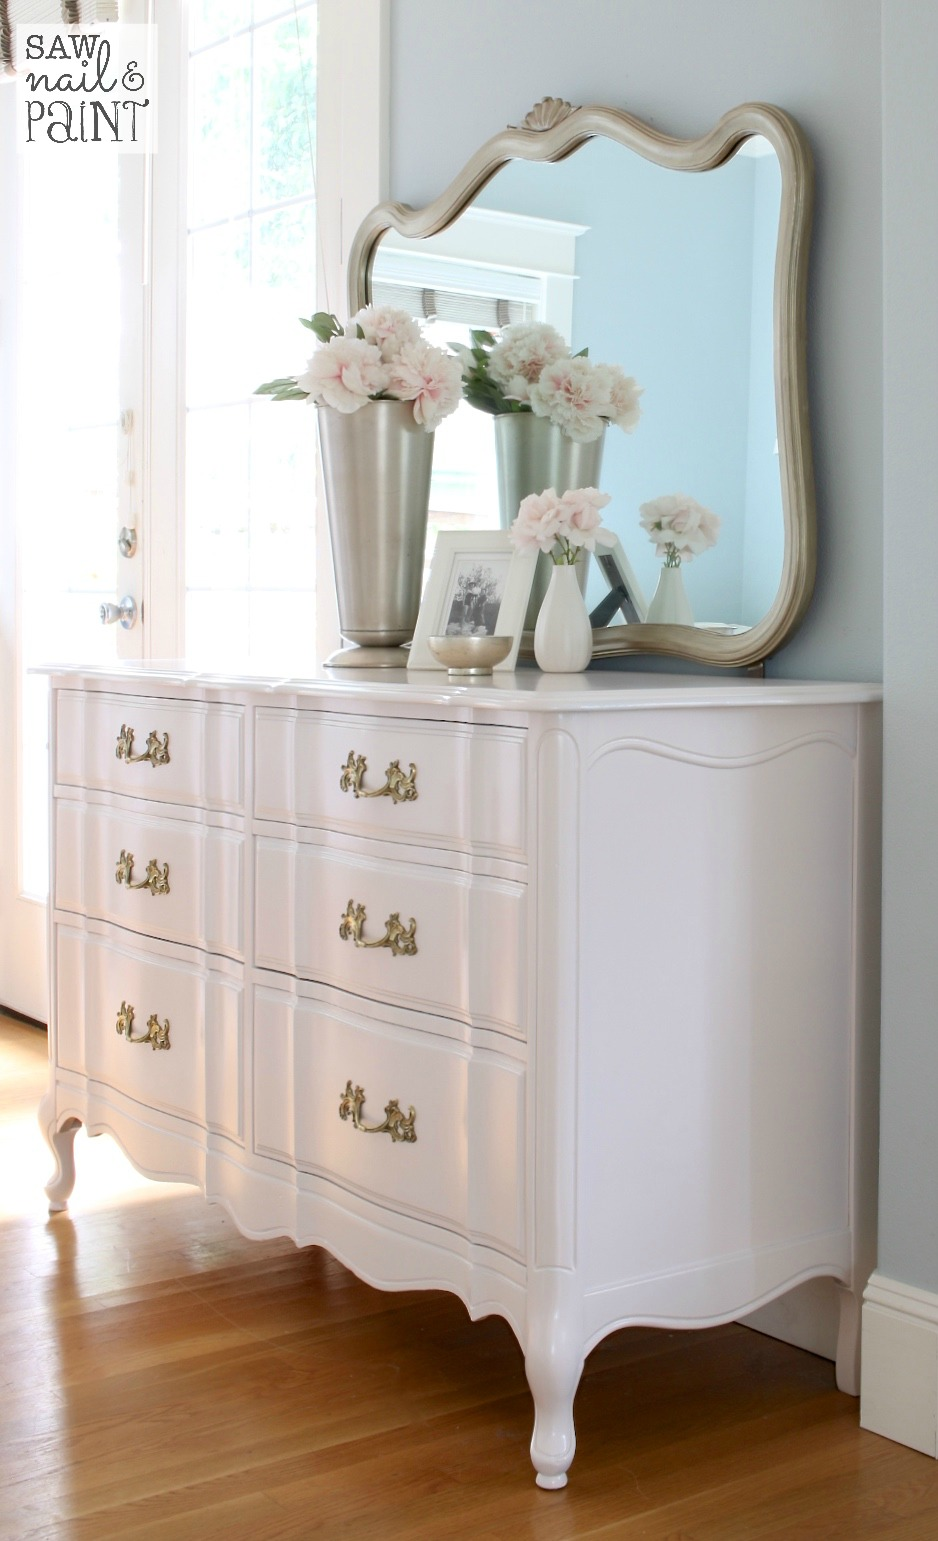 Silky smooth french provincial dresser saw nail and paint - Dresser for small room ...